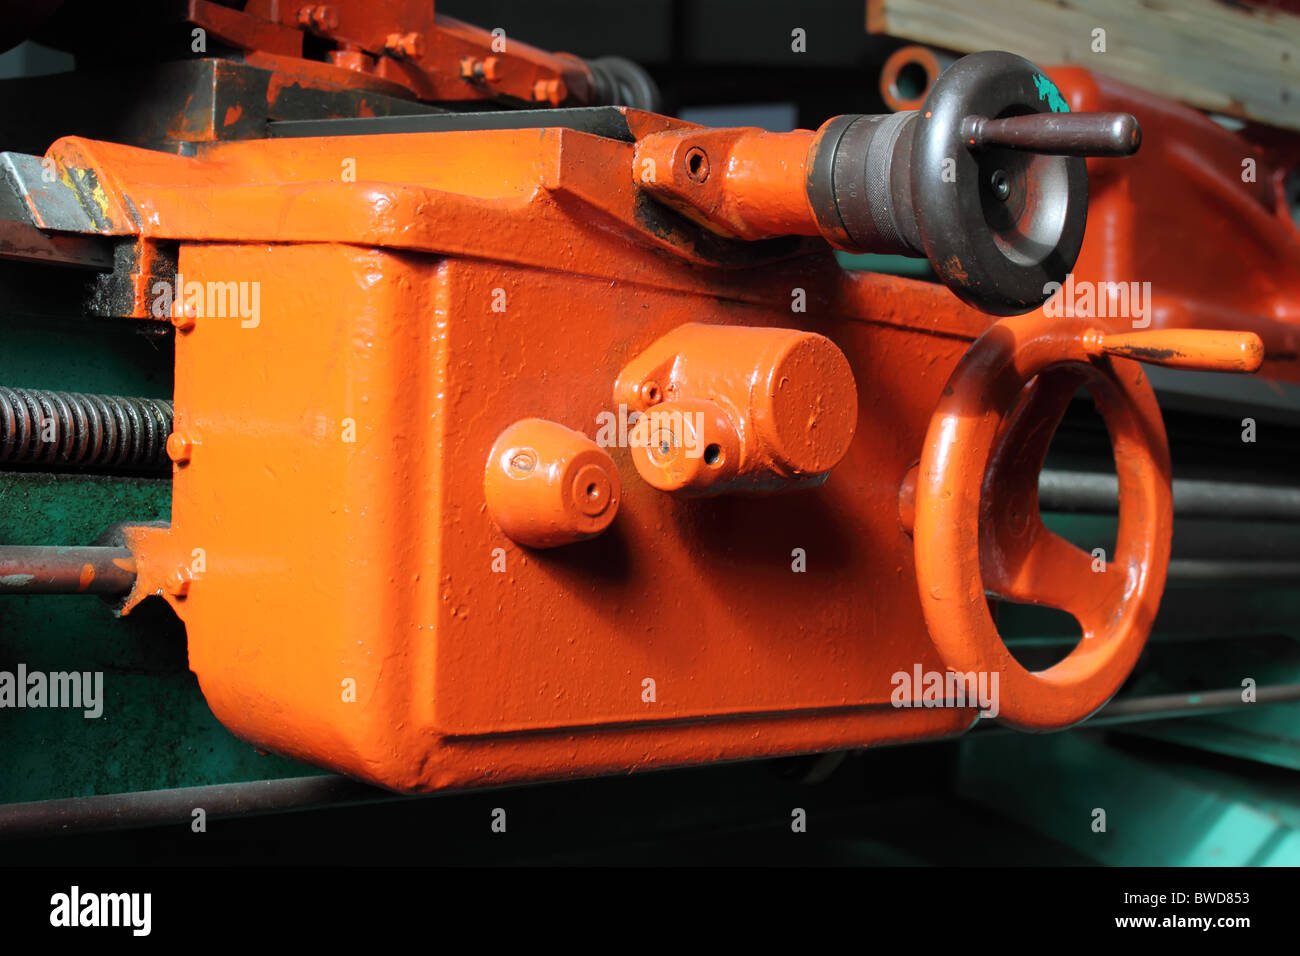 a8e7b7d16cd0 Lathe Engine Imágenes De Stock   Lathe Engine Fotos De Stock - Alamy